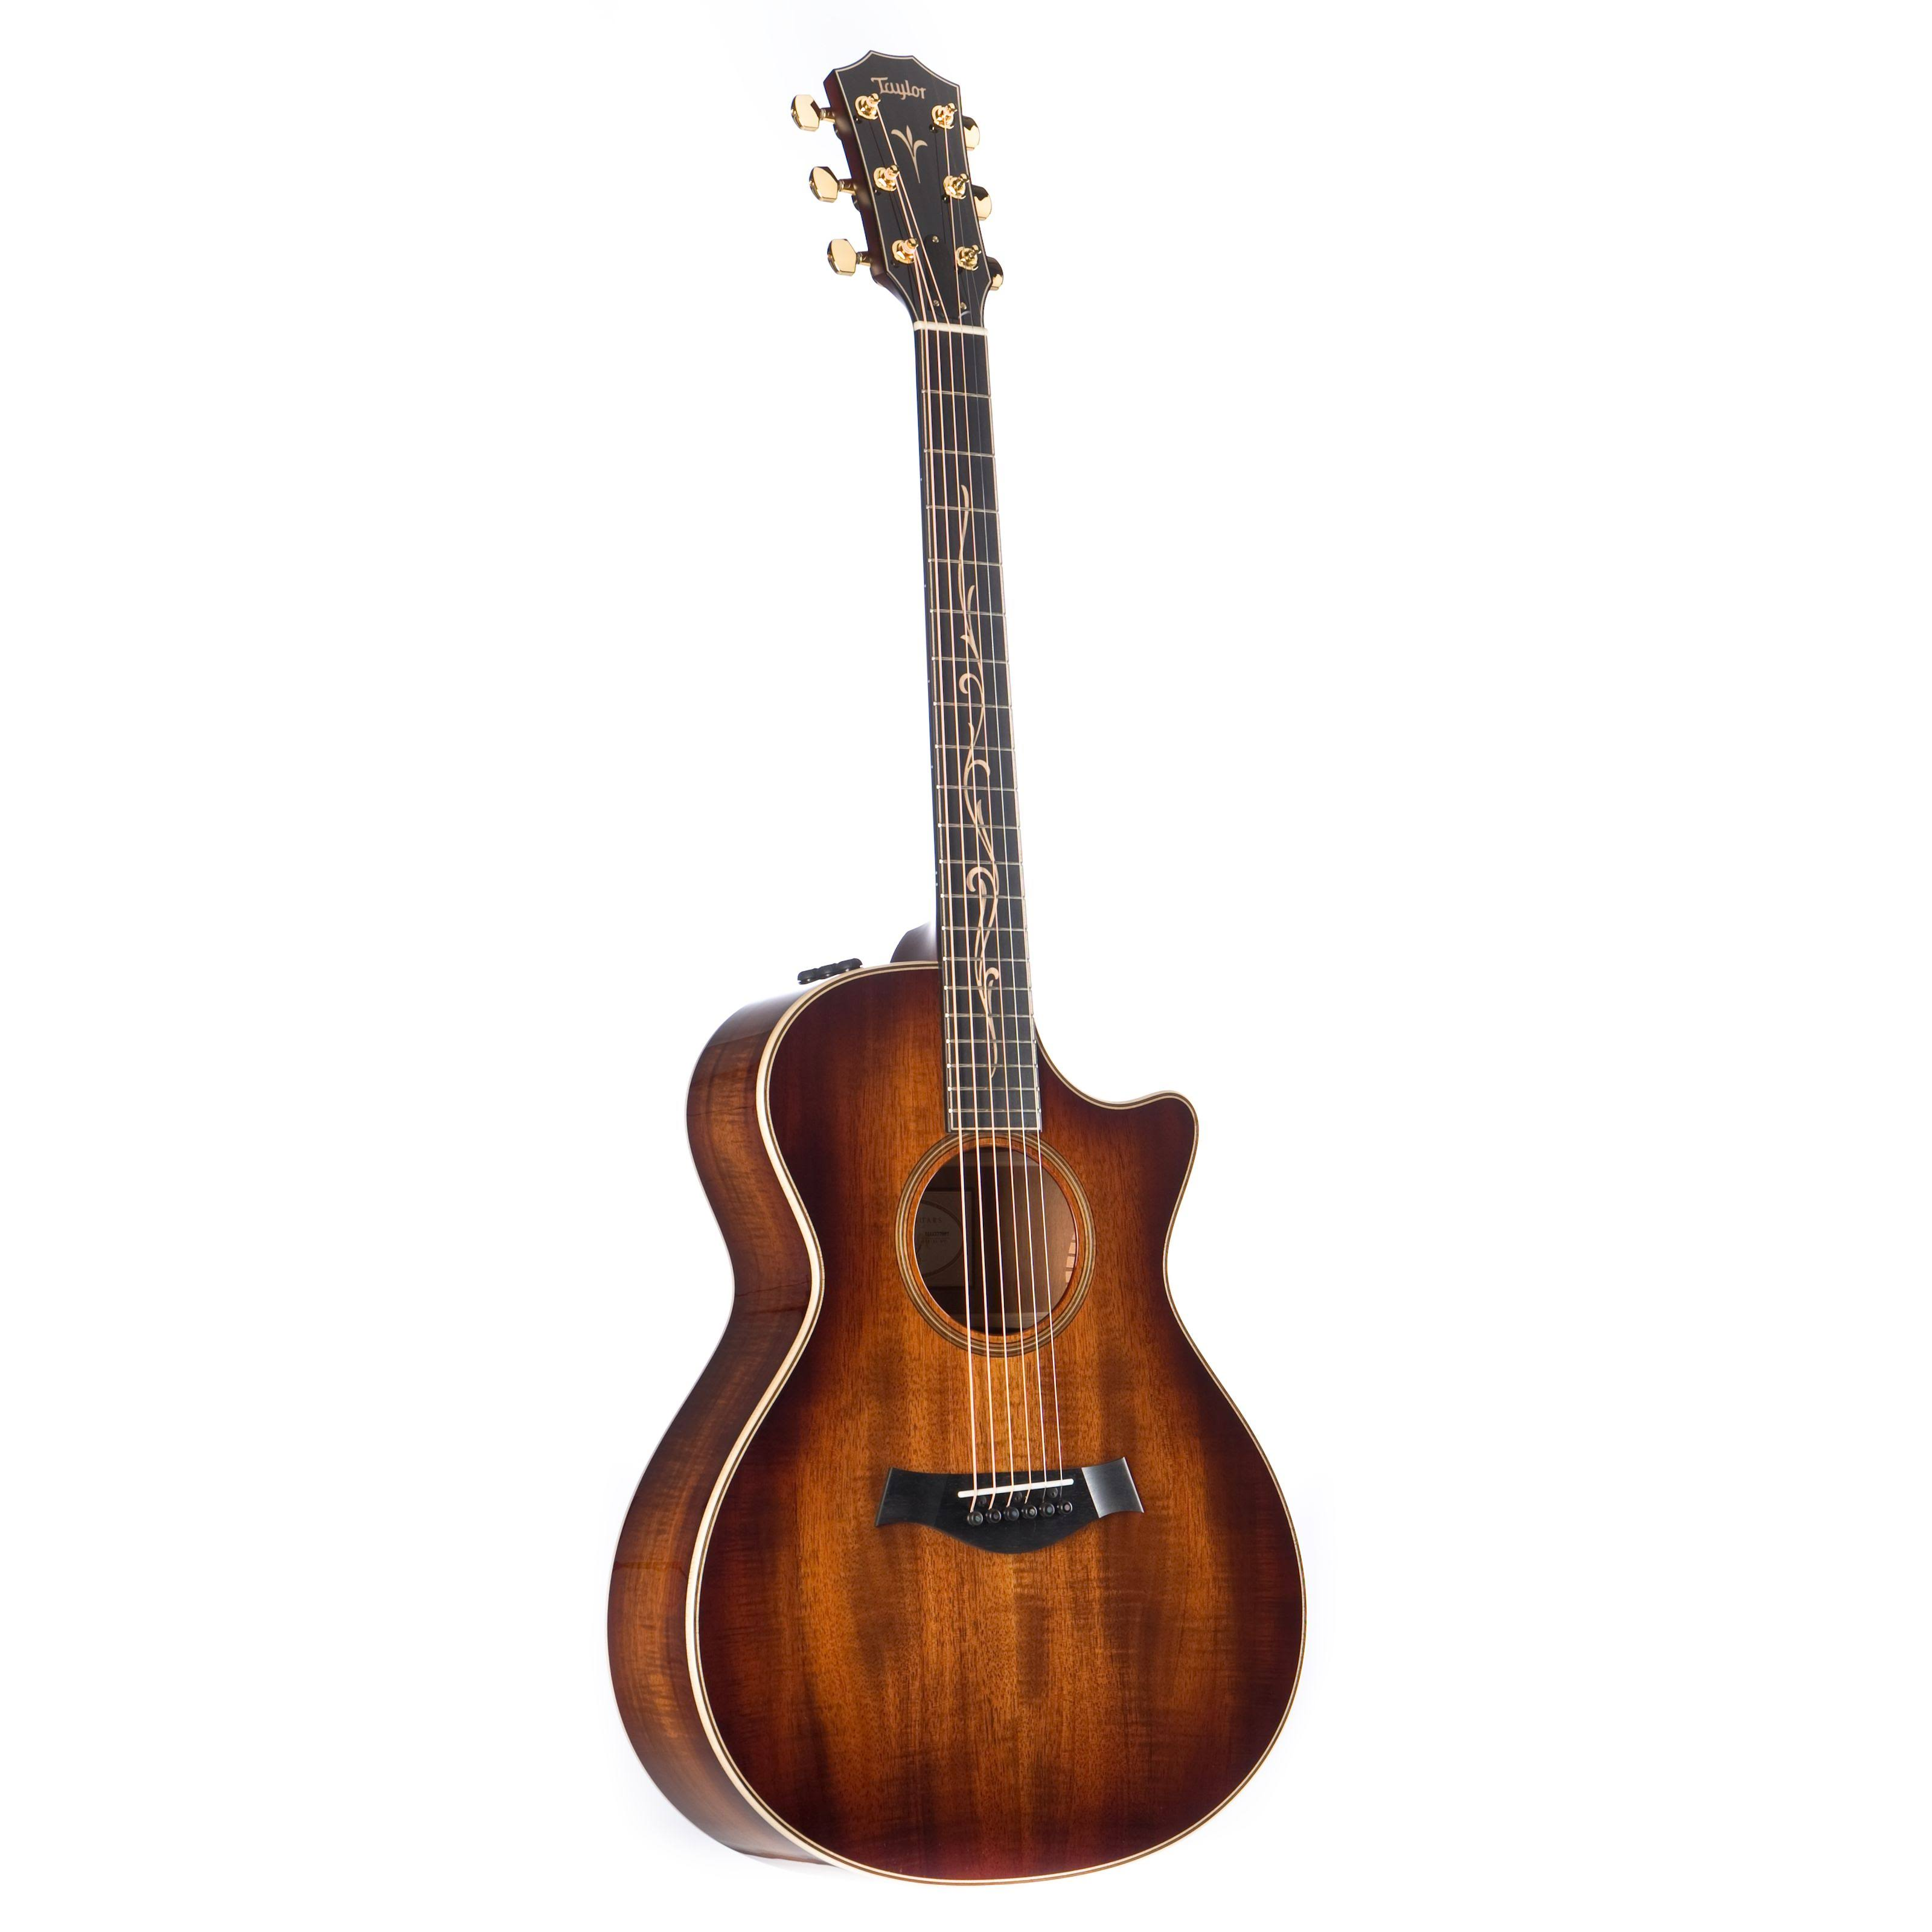 Taylor K22ce Grand Concert Acoustic-Electric Guitar Shaded Edge Burst